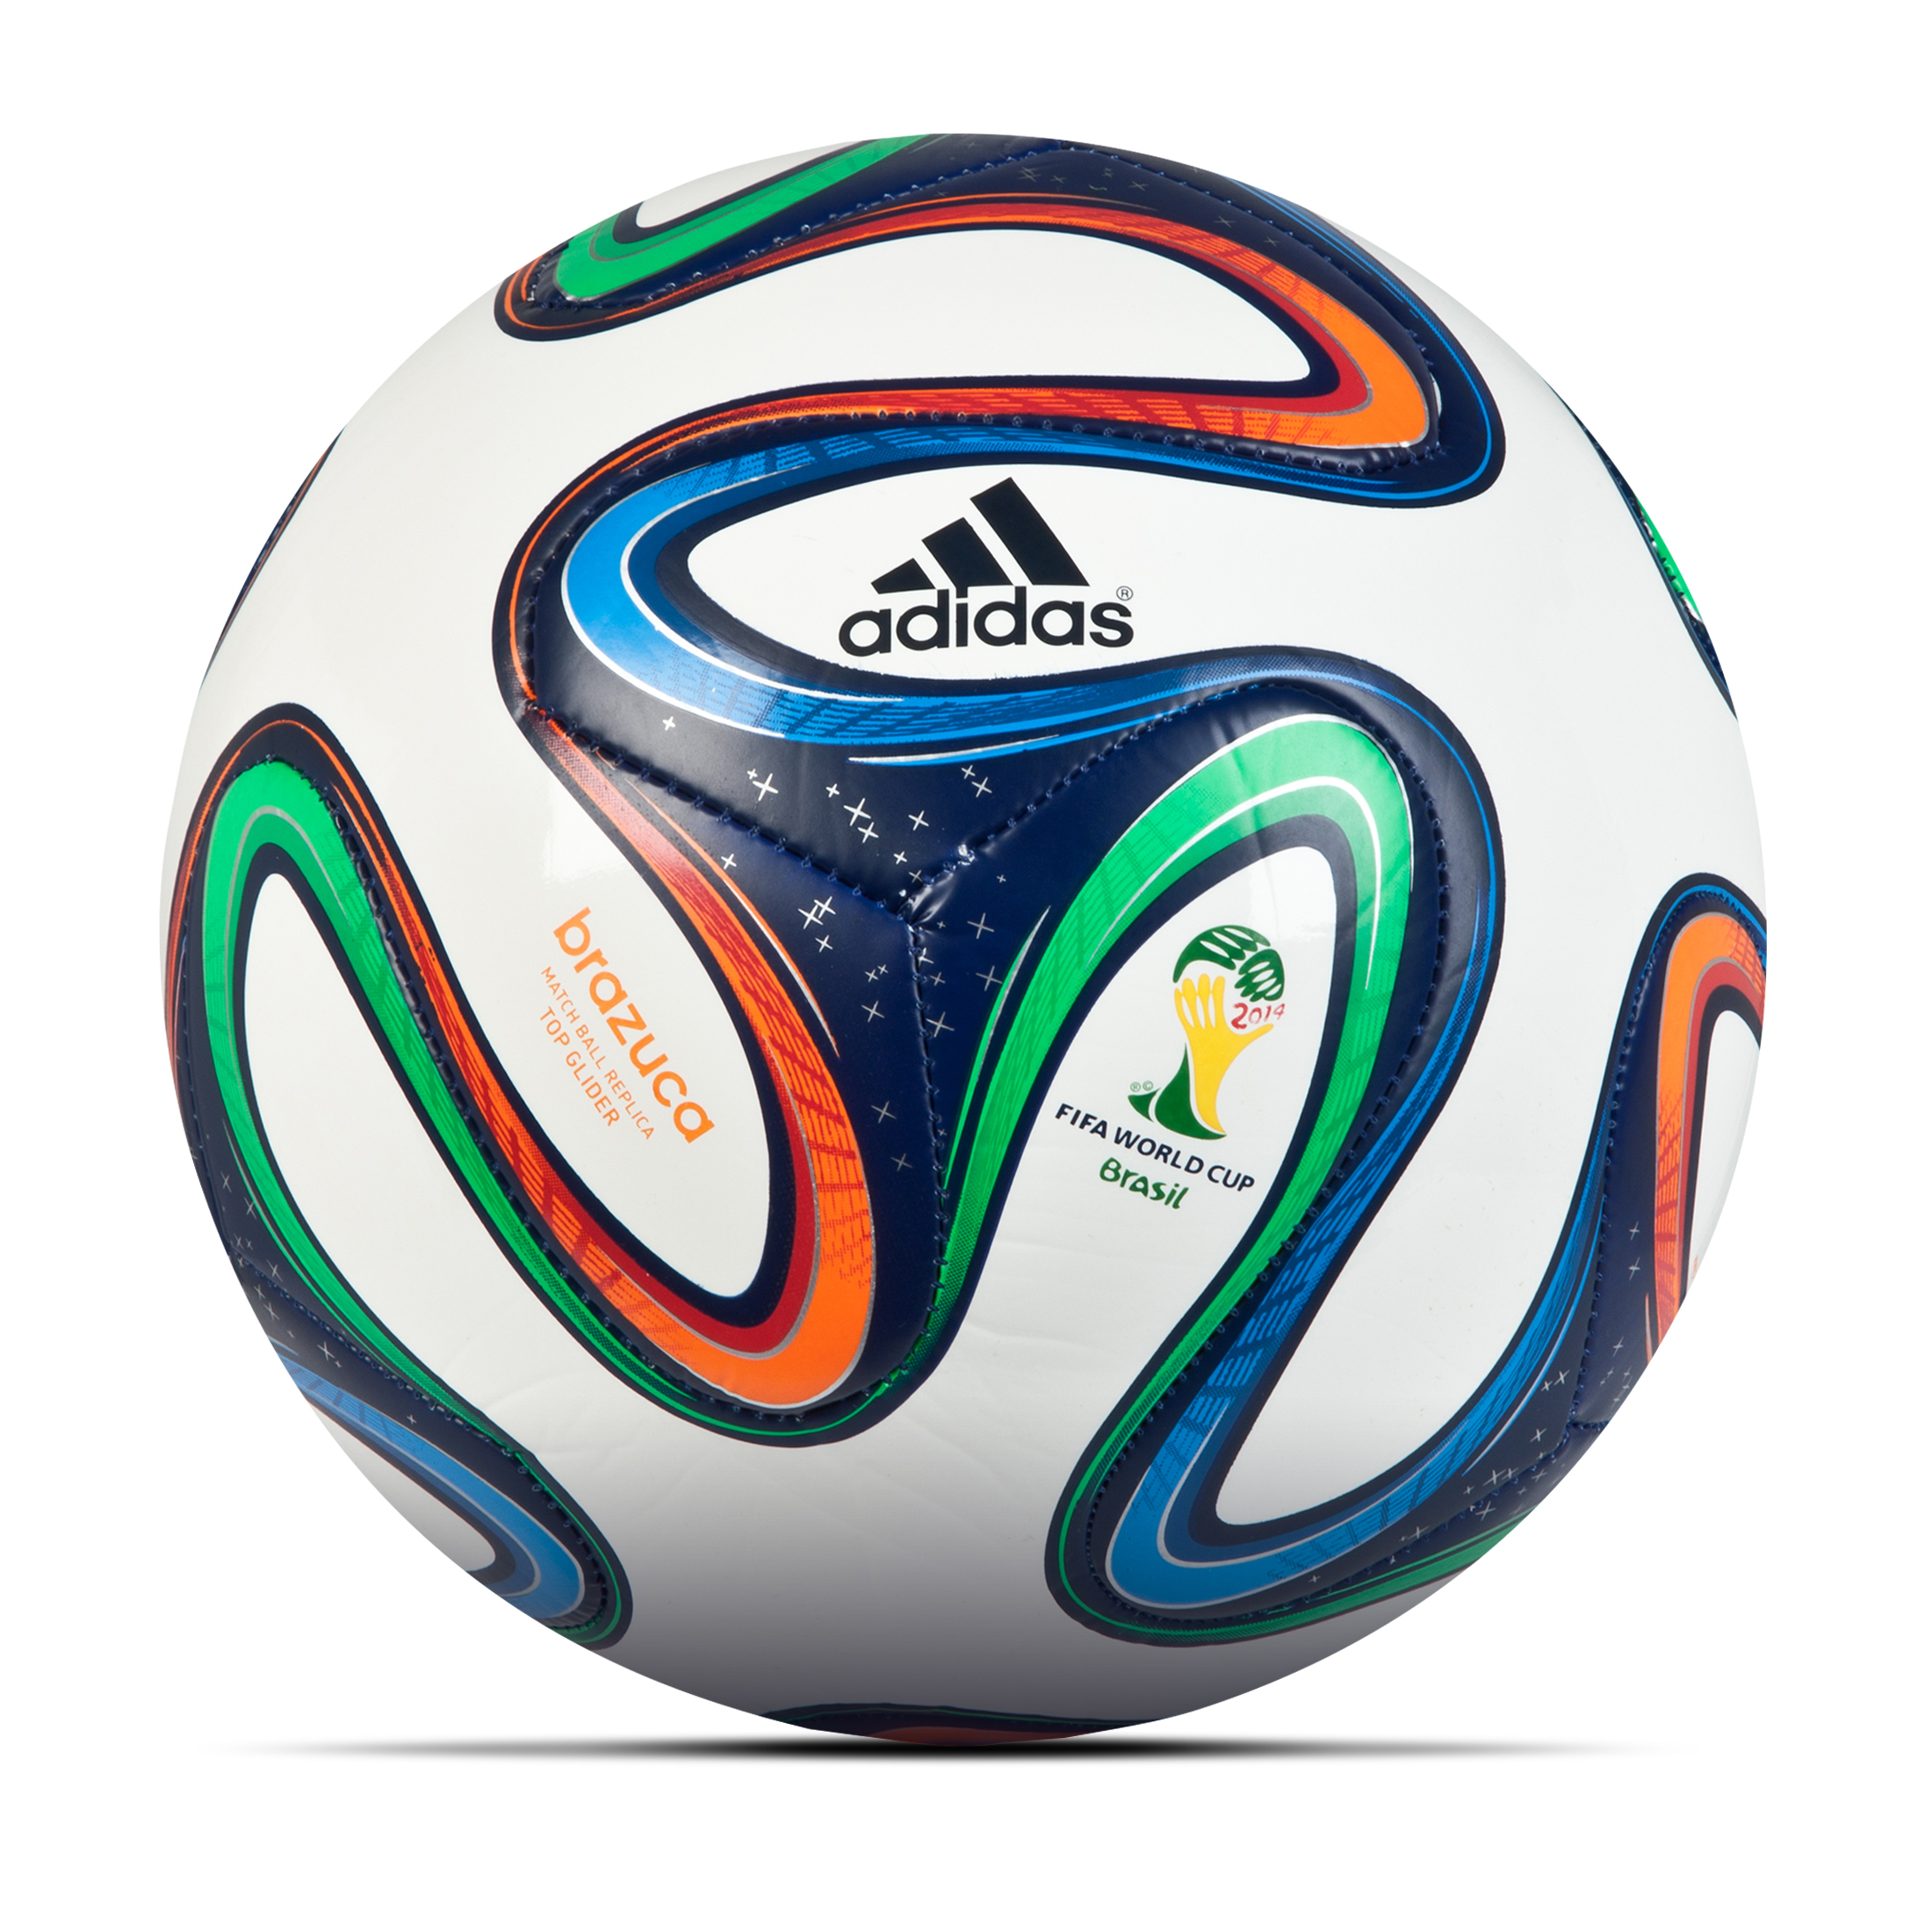 Adidas Brazuca Top Glider Football - White/Night Blue/Multi White